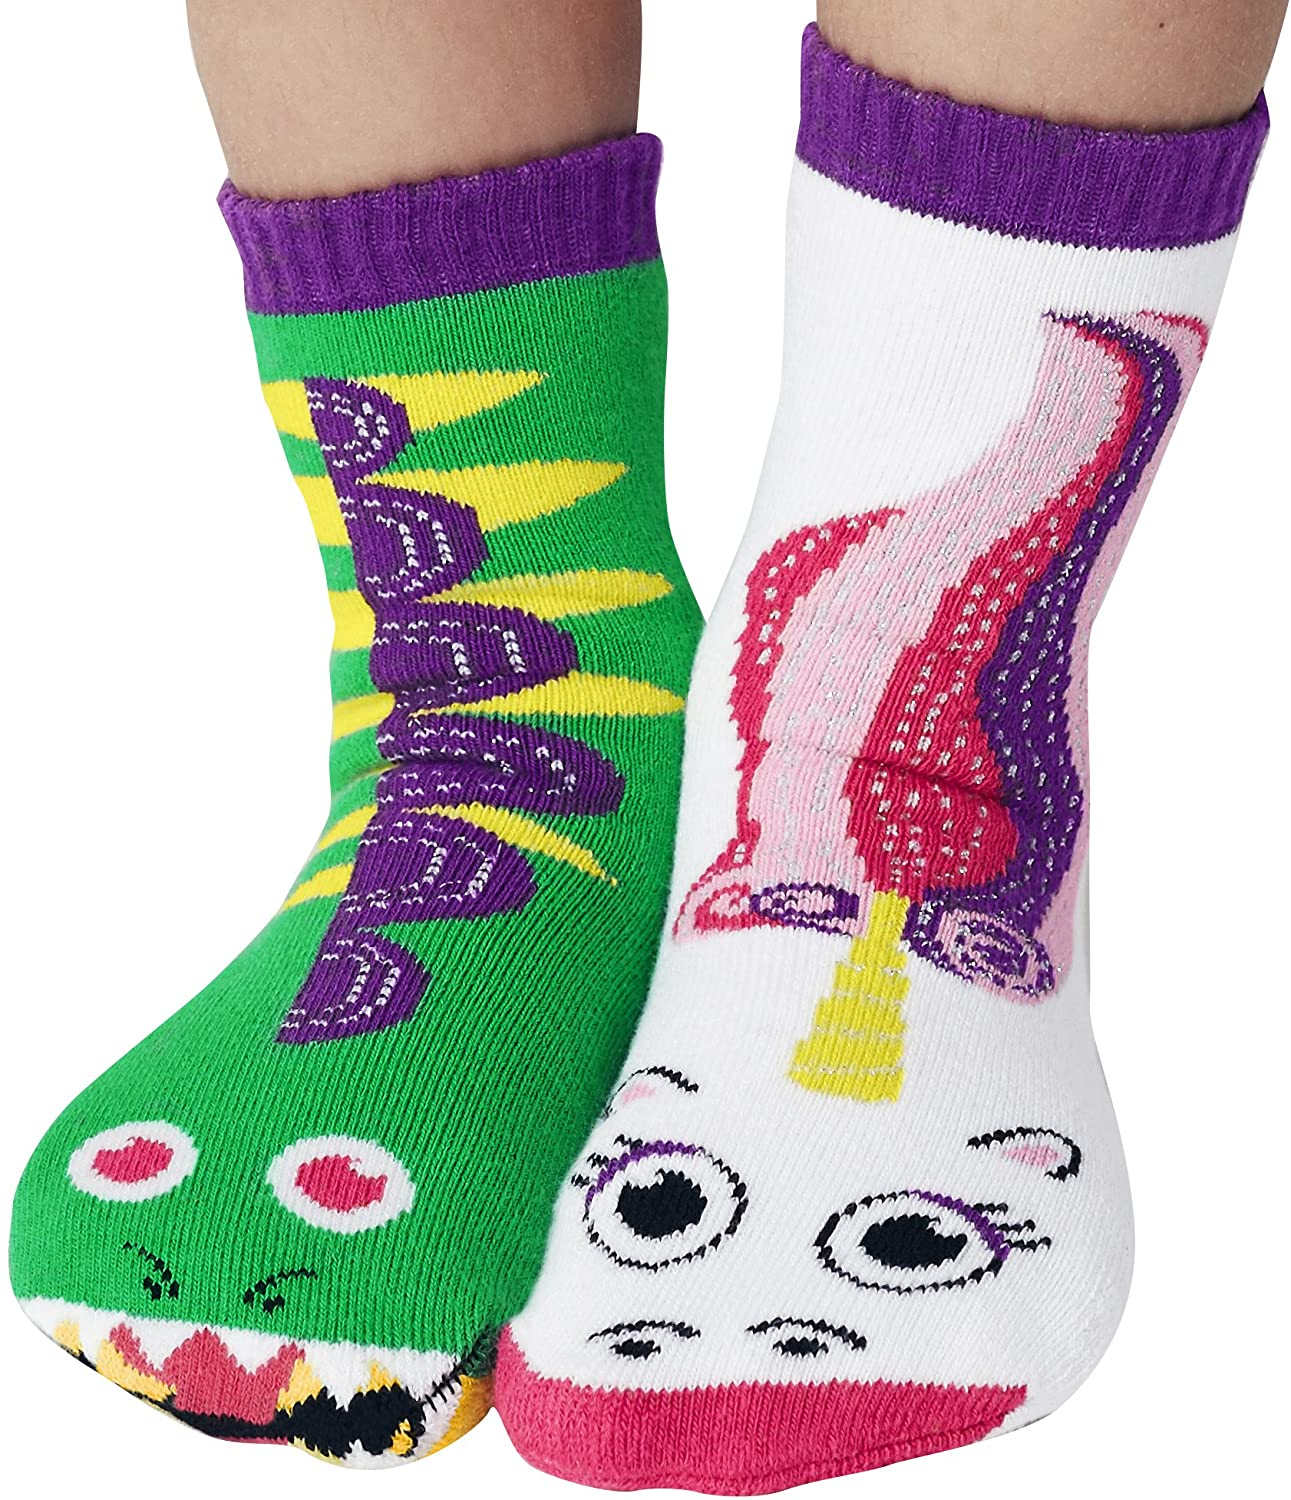 Dragon & Unicorn Magical Fantasy Pals Collectible Mismatched Silly Cute Socks for Boys Girls